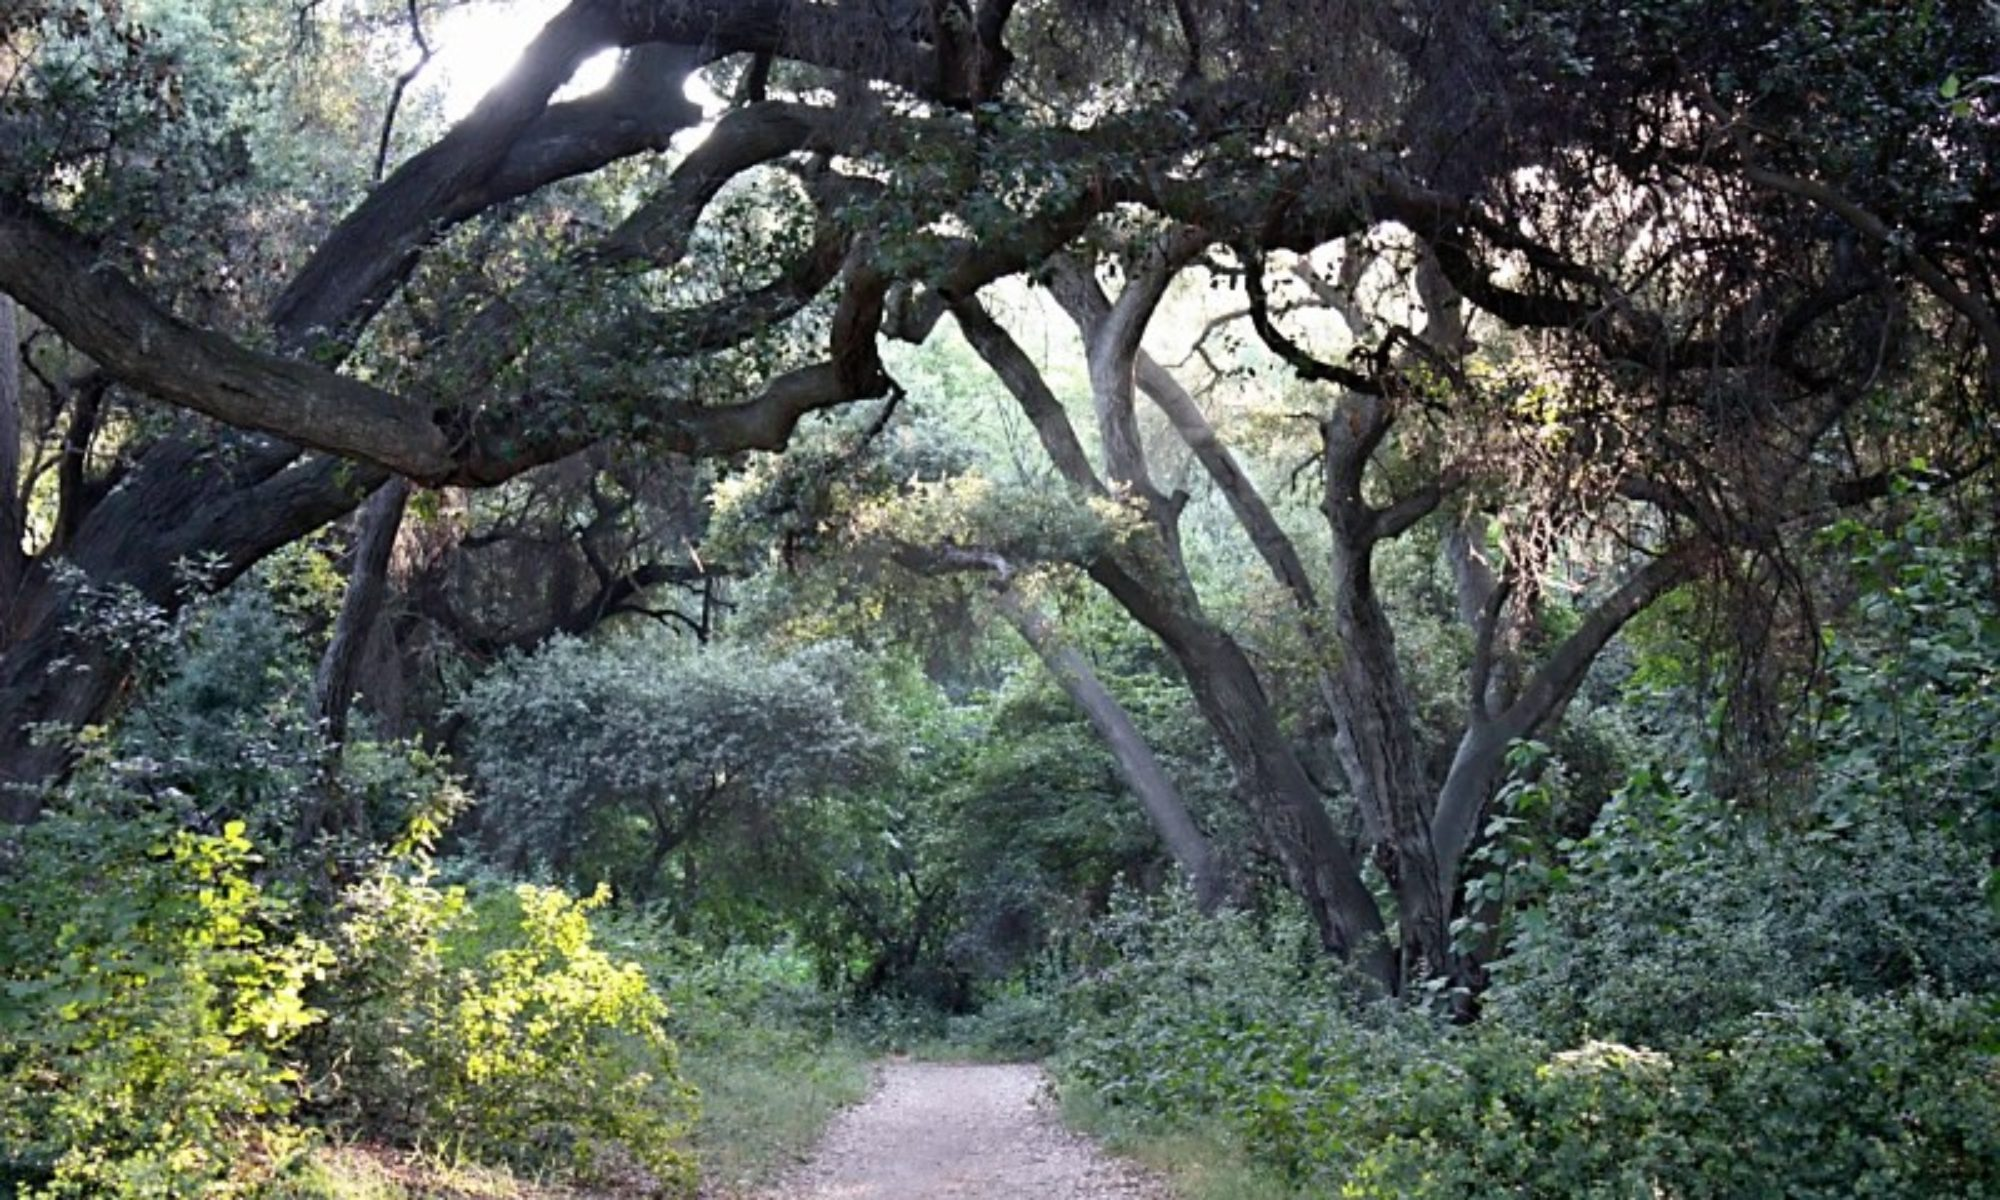 The La Verne Land Conservancy